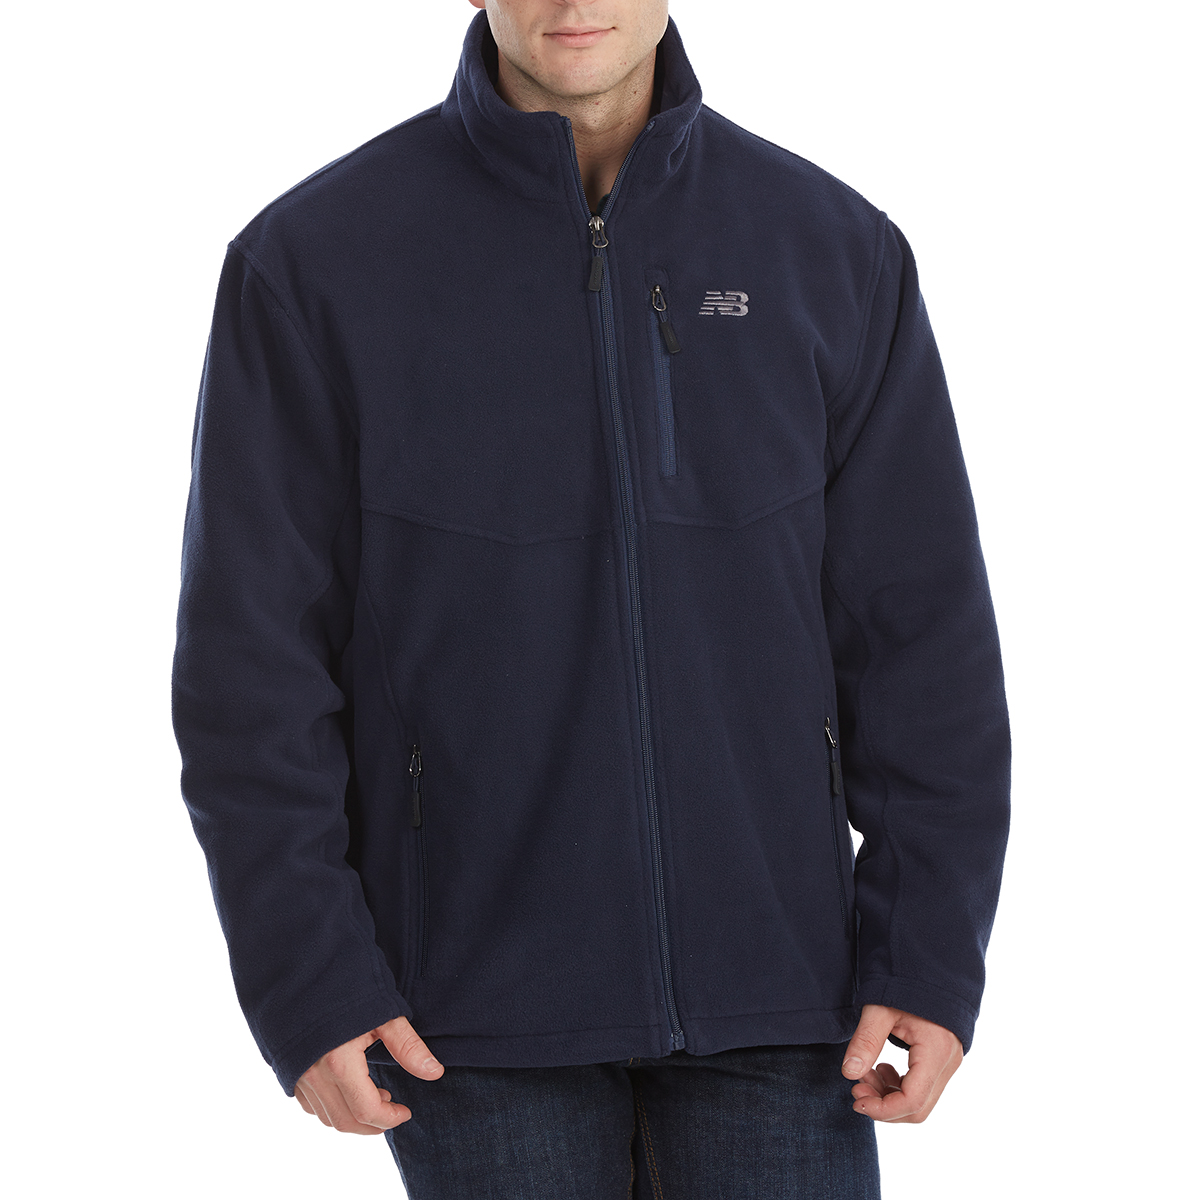 New Balance Men's Sherpa-Lined Self-Collar Polar Fleece Jacket - Blue, M